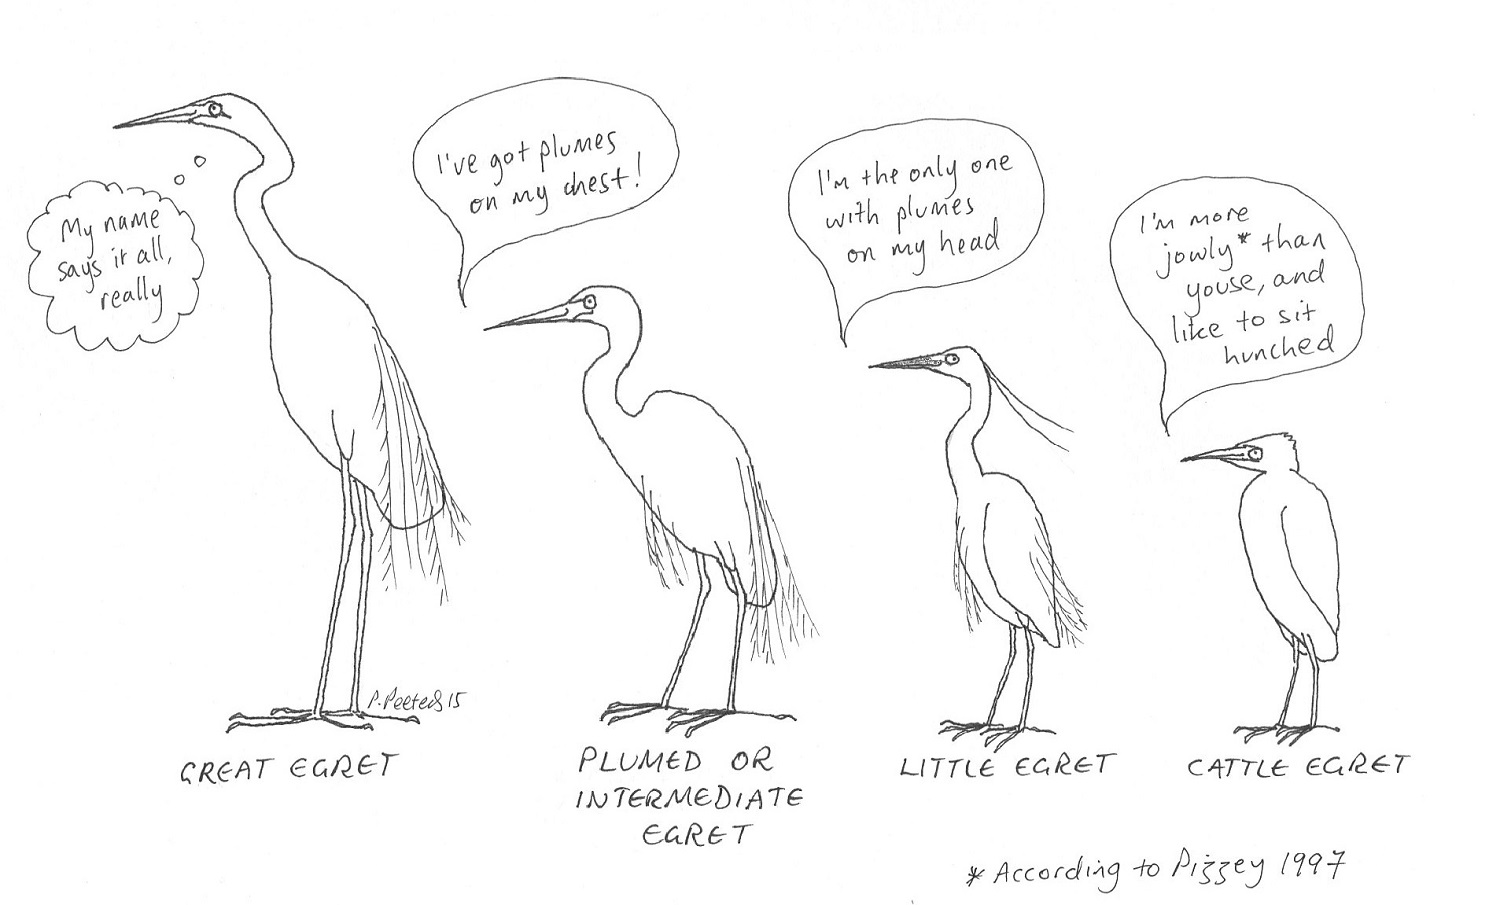 Four of the five egret species found in Australia (the reef egret is missing). The first three are in breeding plumage.